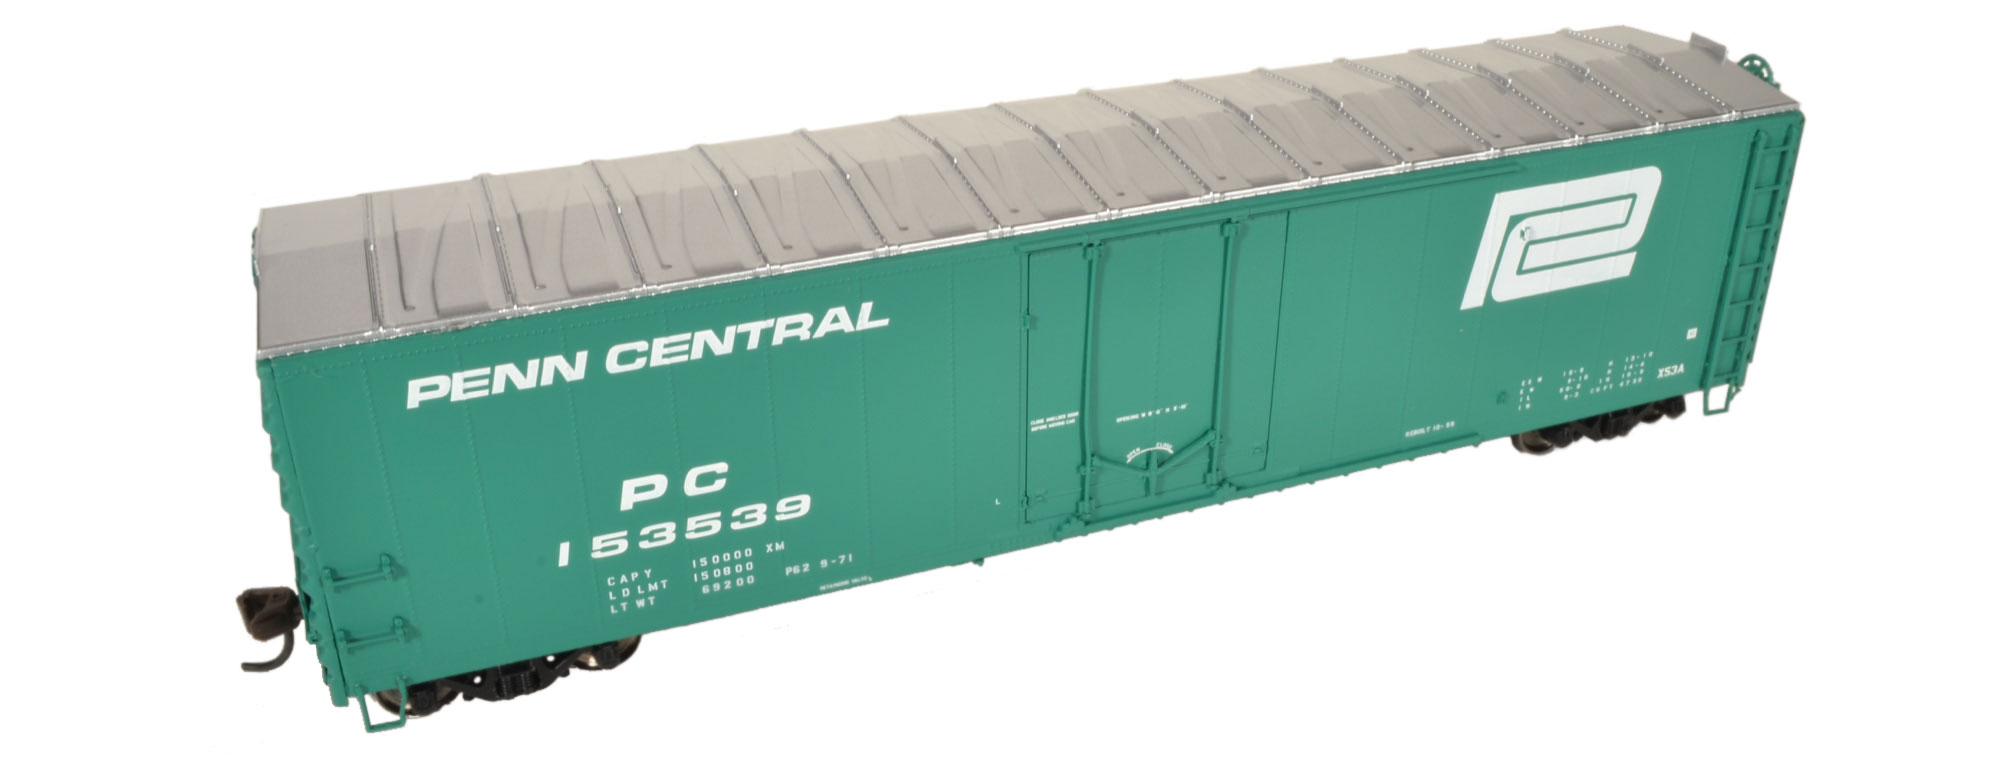 Weathering an ex-Penn Central Conrail Boxcar - Railroad Model Craftsman